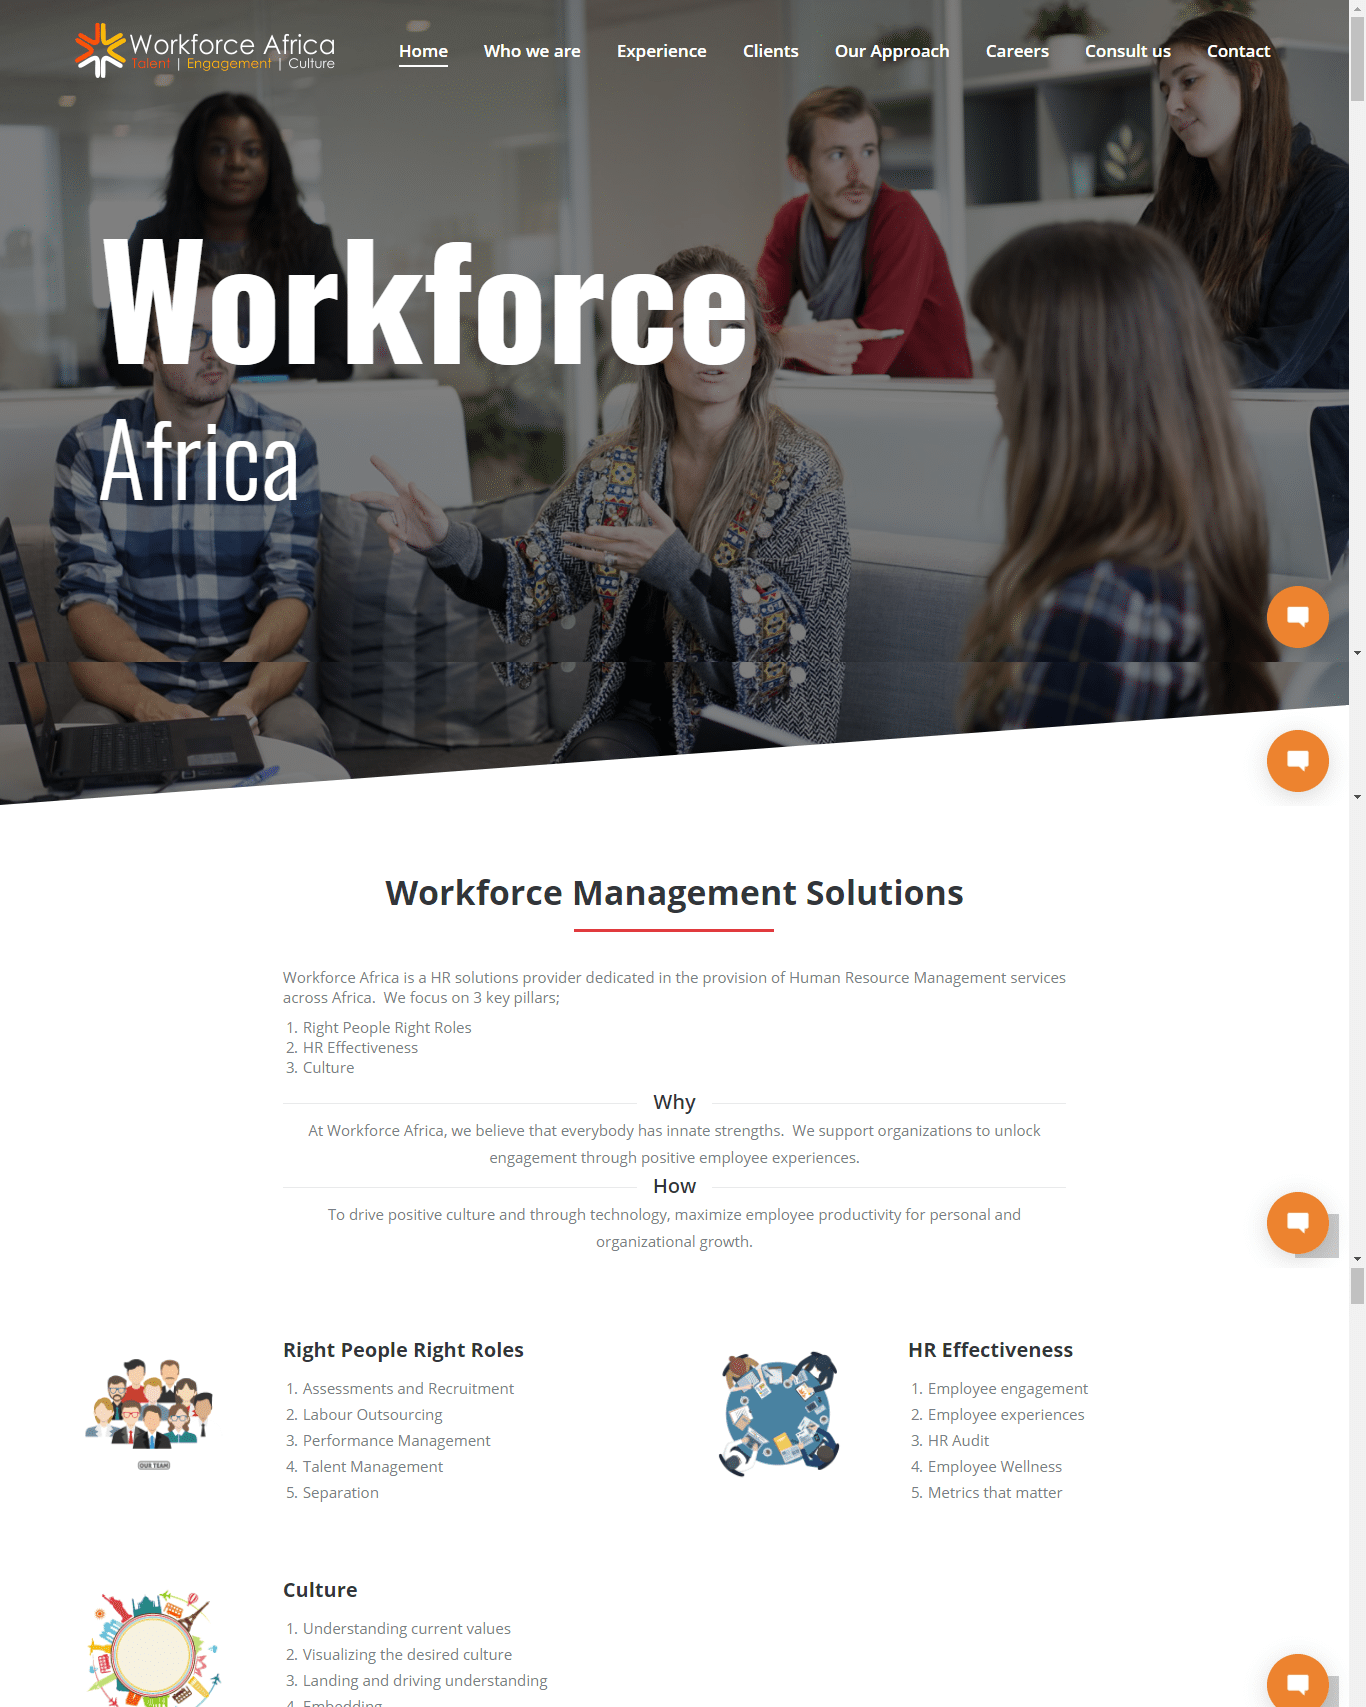 Workforce Africa - The Duo with a Continental Dream